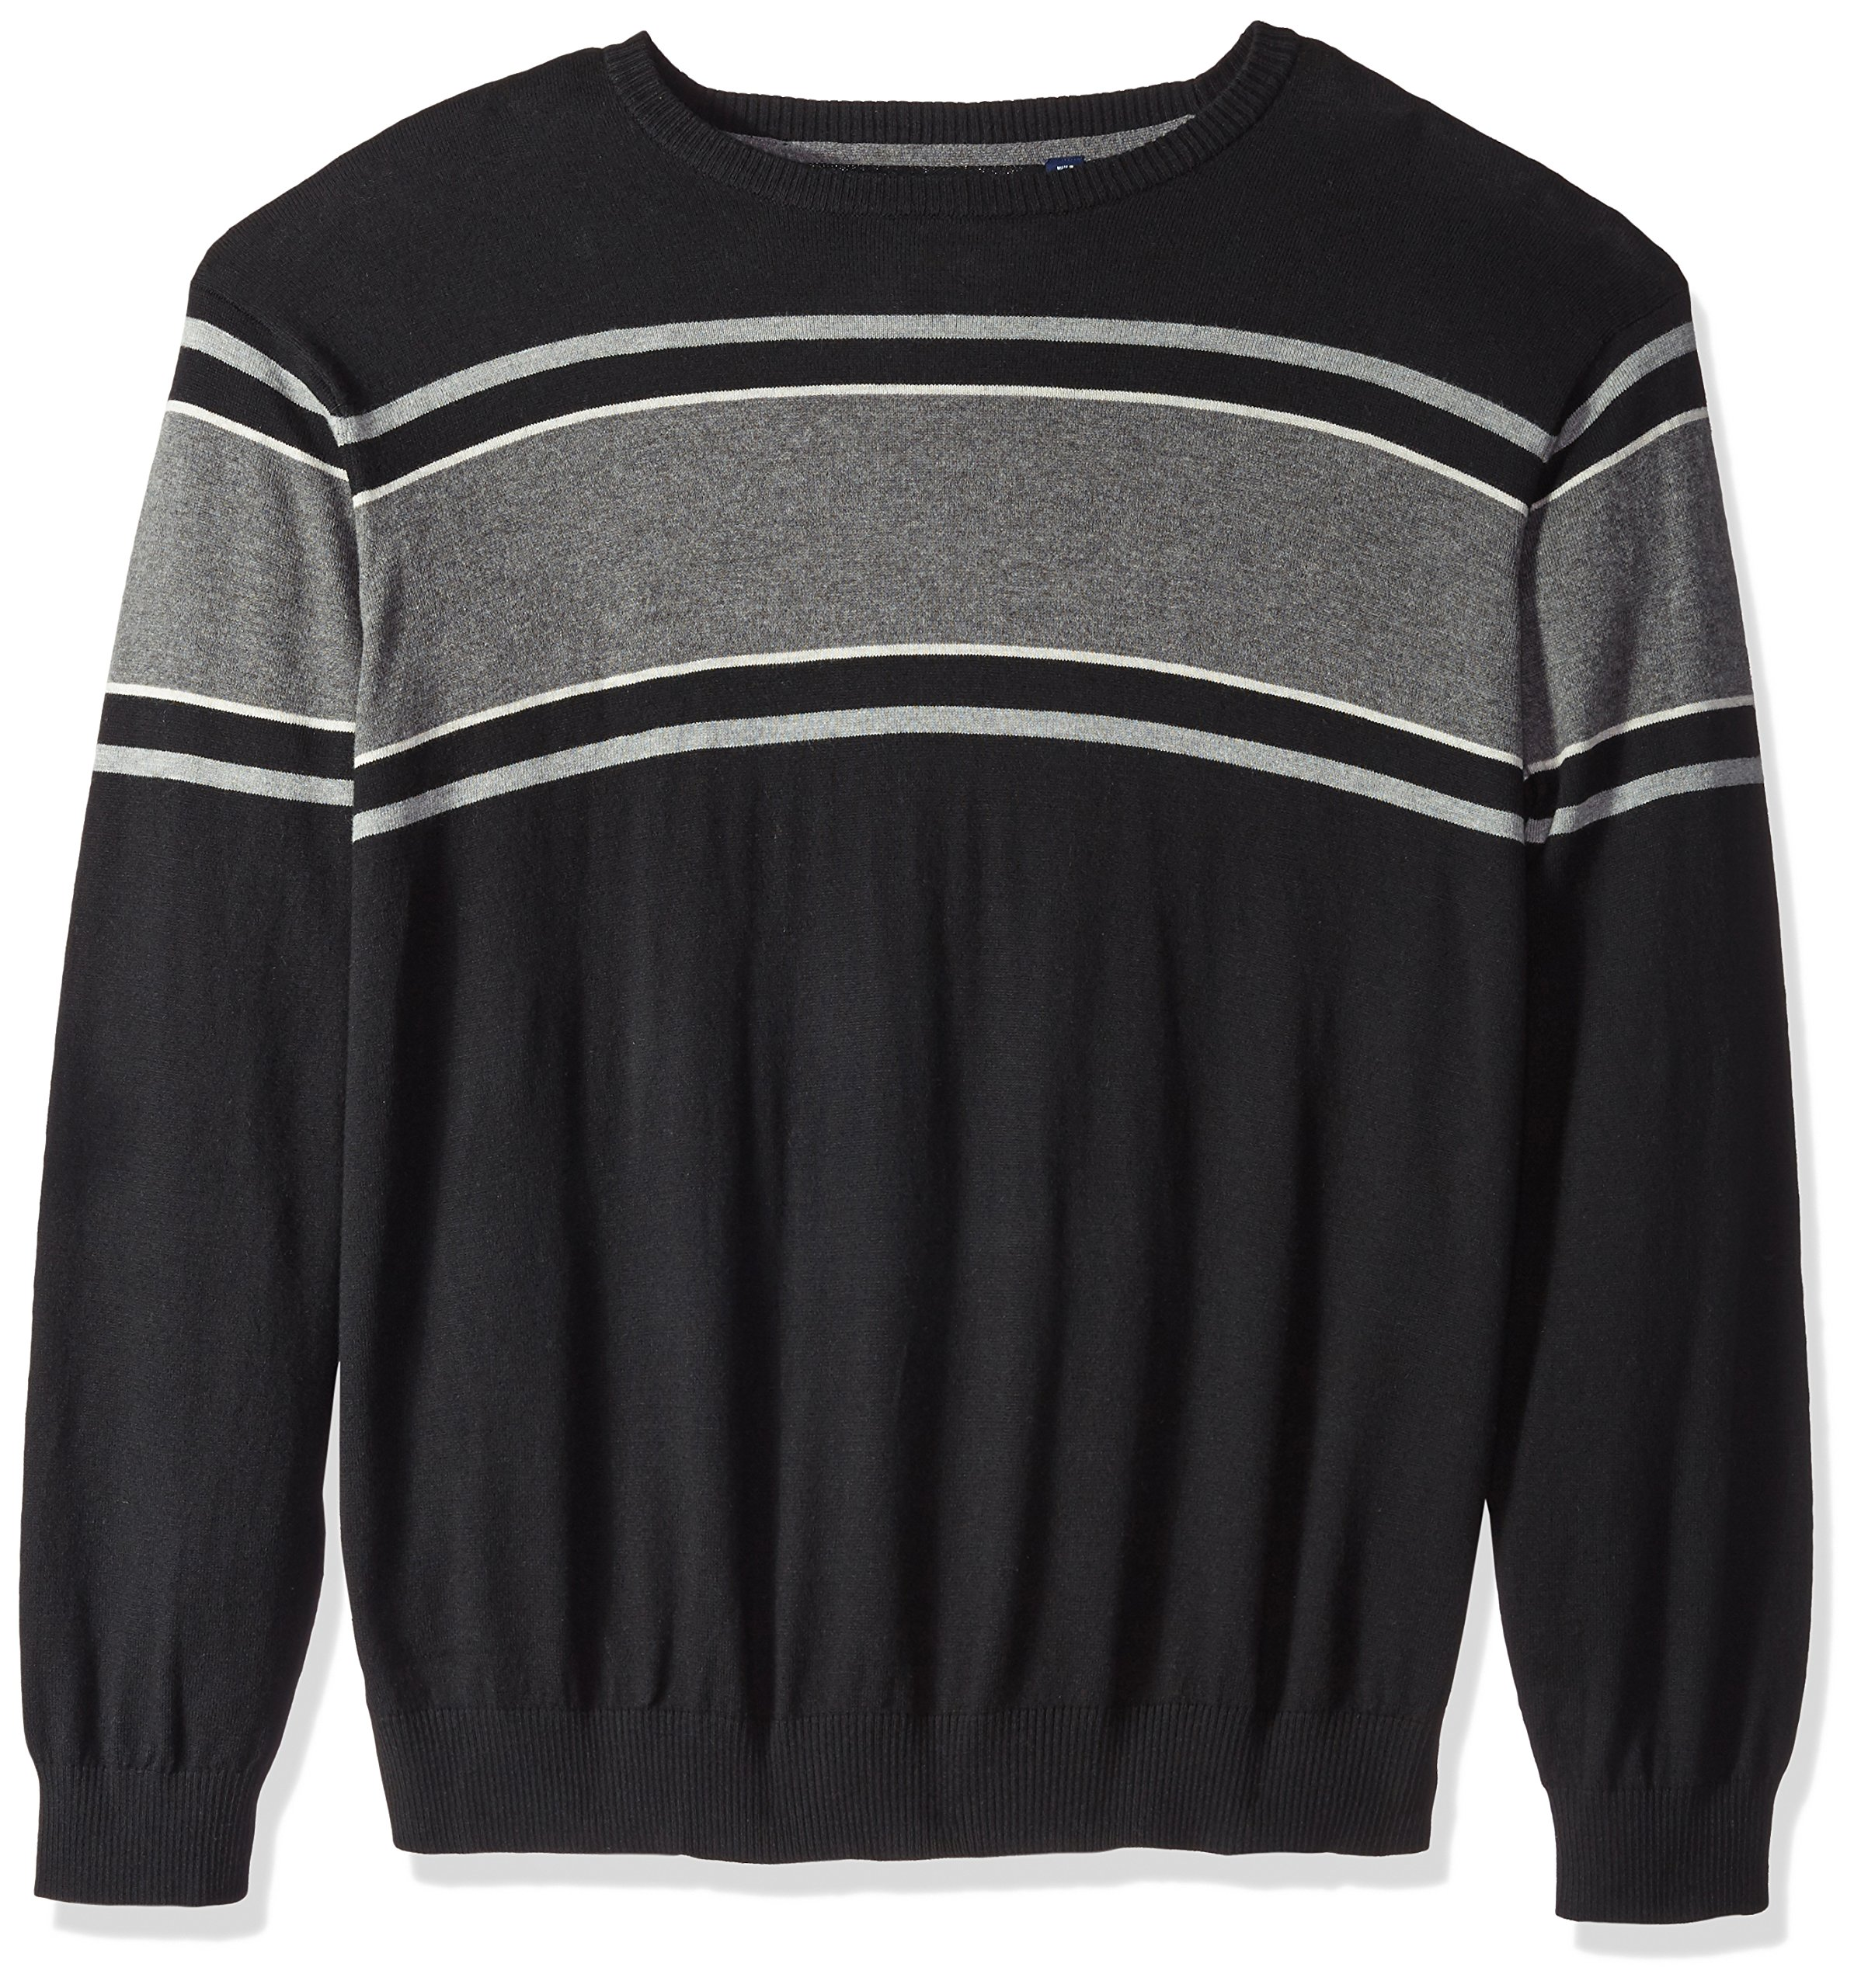 IZOD Men's Big Fine Gauge Stripe Crew Sweater, Black, X-Large Tall